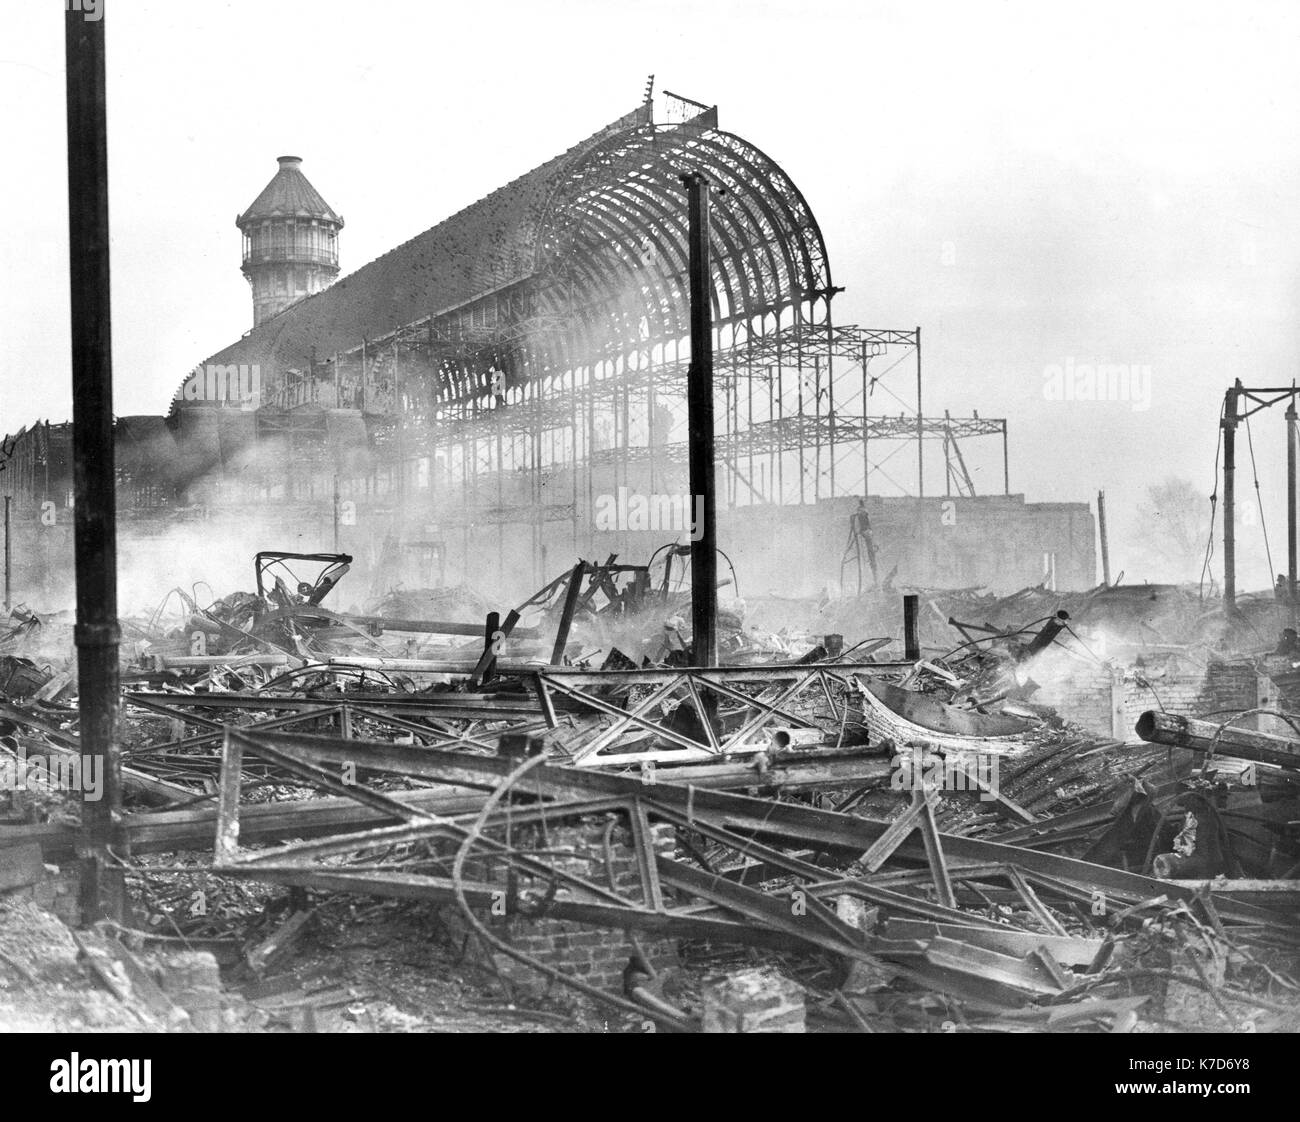 Photo Must Be Credited ©Alpha Press 050000 01/12/1936 The Crystal Palace on fire at Sydenham in South London. - Stock Image